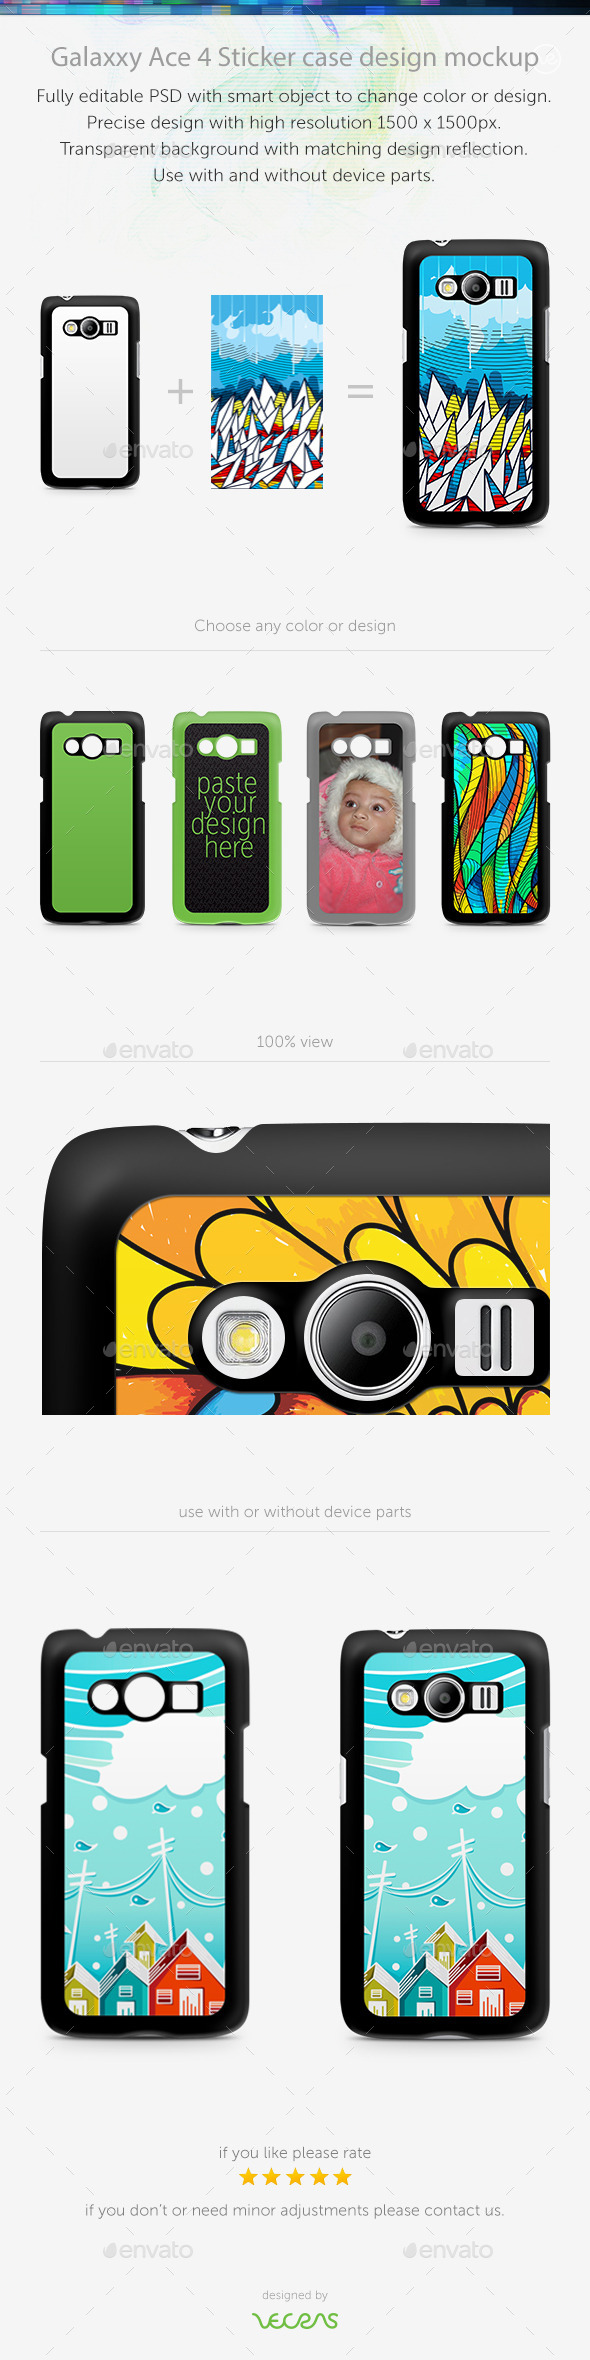 Galaxxy Ace 4 Sticker Case Design Mockup